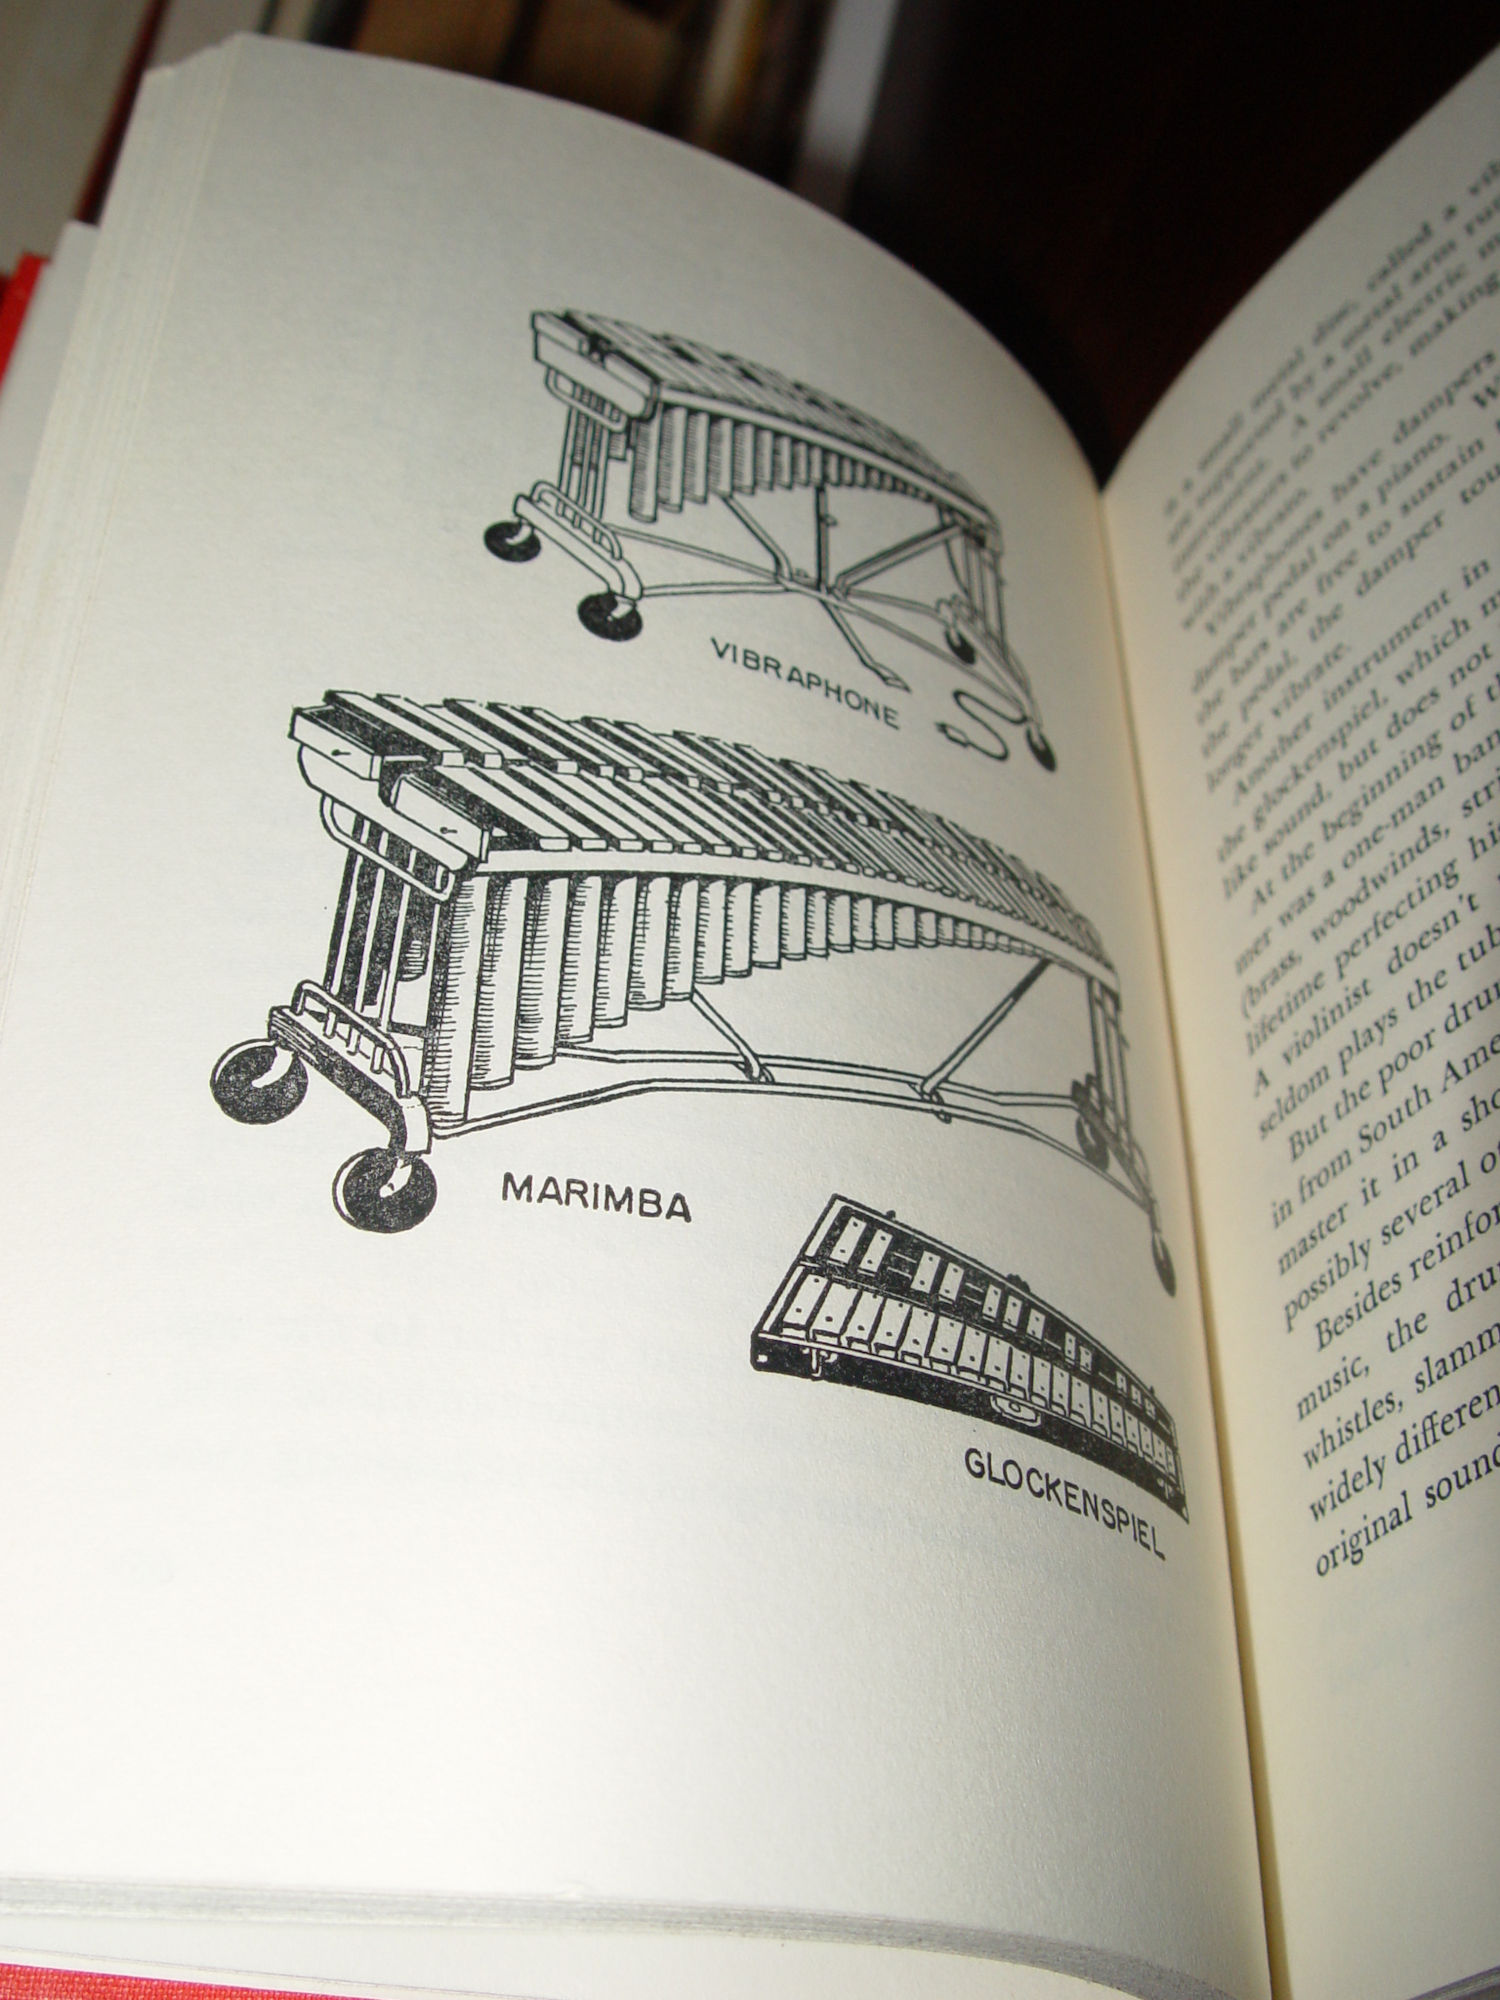 PALGRAVE'S THE                                         GOLDEN TREASURY WITH THE                                         UNABRIDGED TEXT OF THE RUBAIYAT                                         OF OMAR KHAYYAM by Palgrave,                                         Francis Turner and Omar Khayyam                                         1944 First